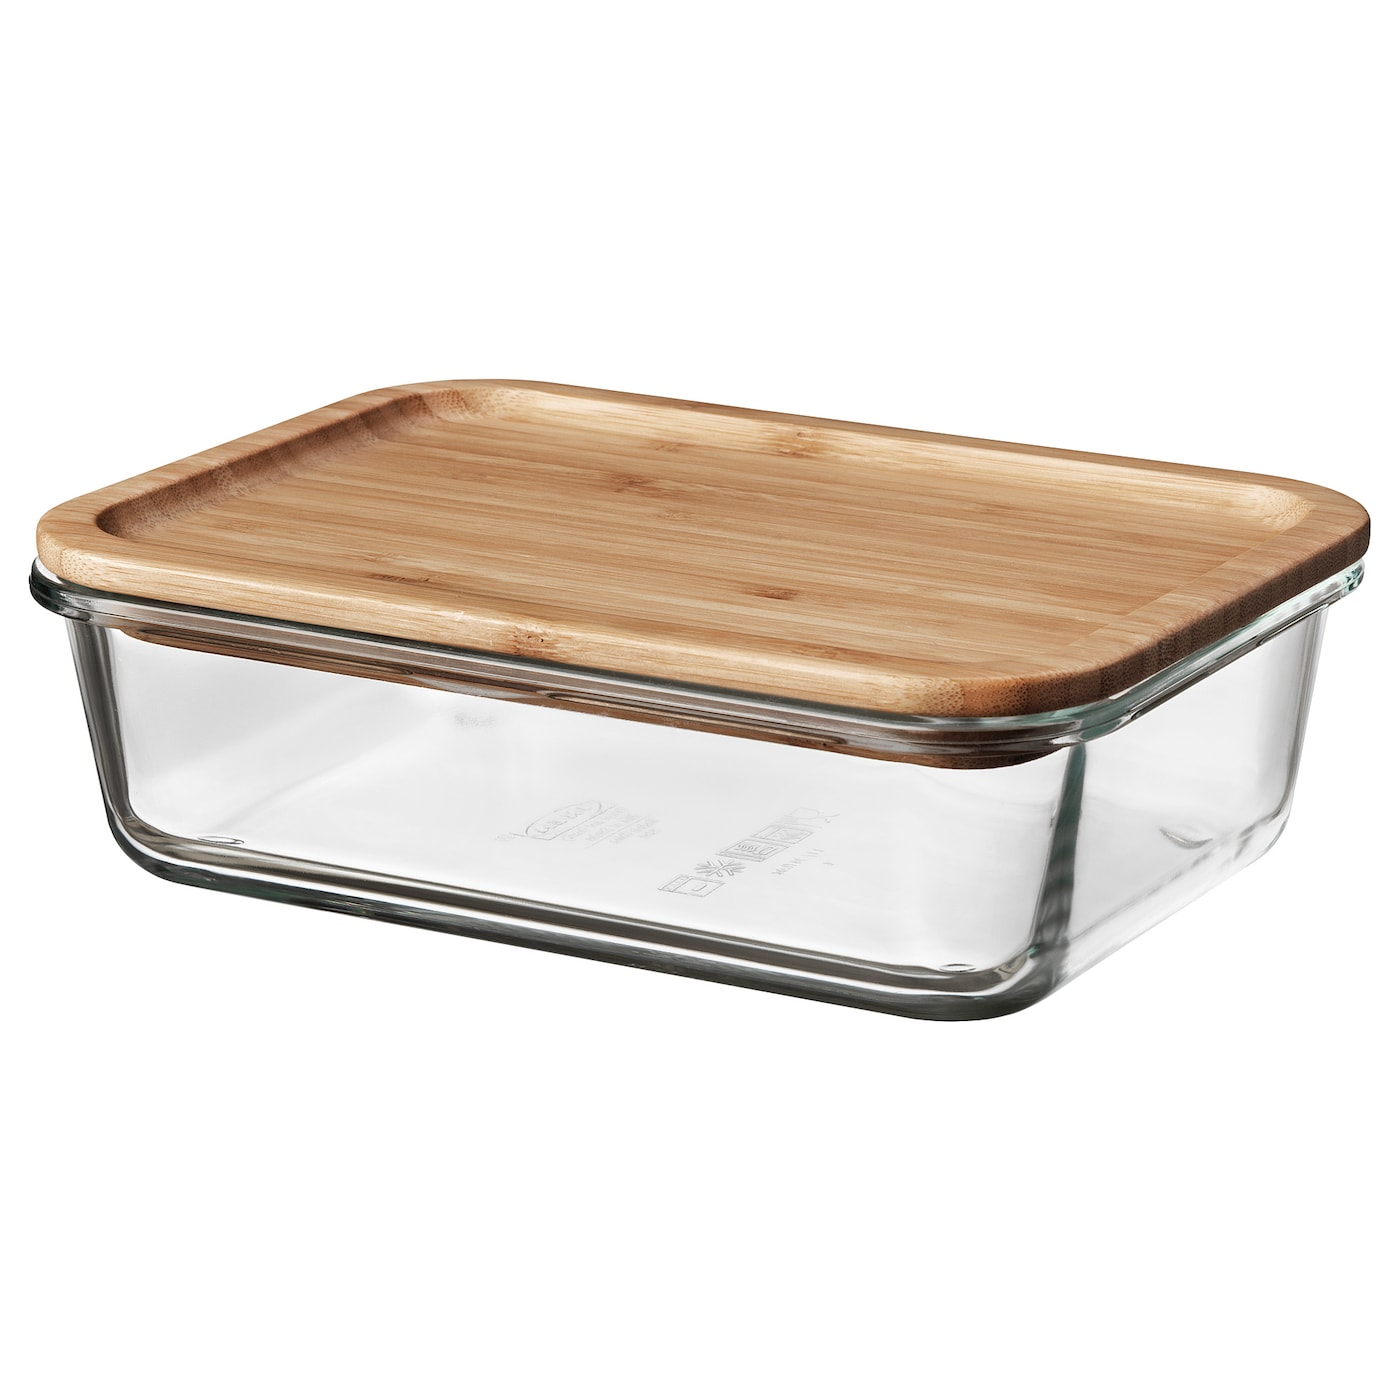 Ikea 365+ Food container with lid, rectangular glass/bamboo34 oz (1.0 l)